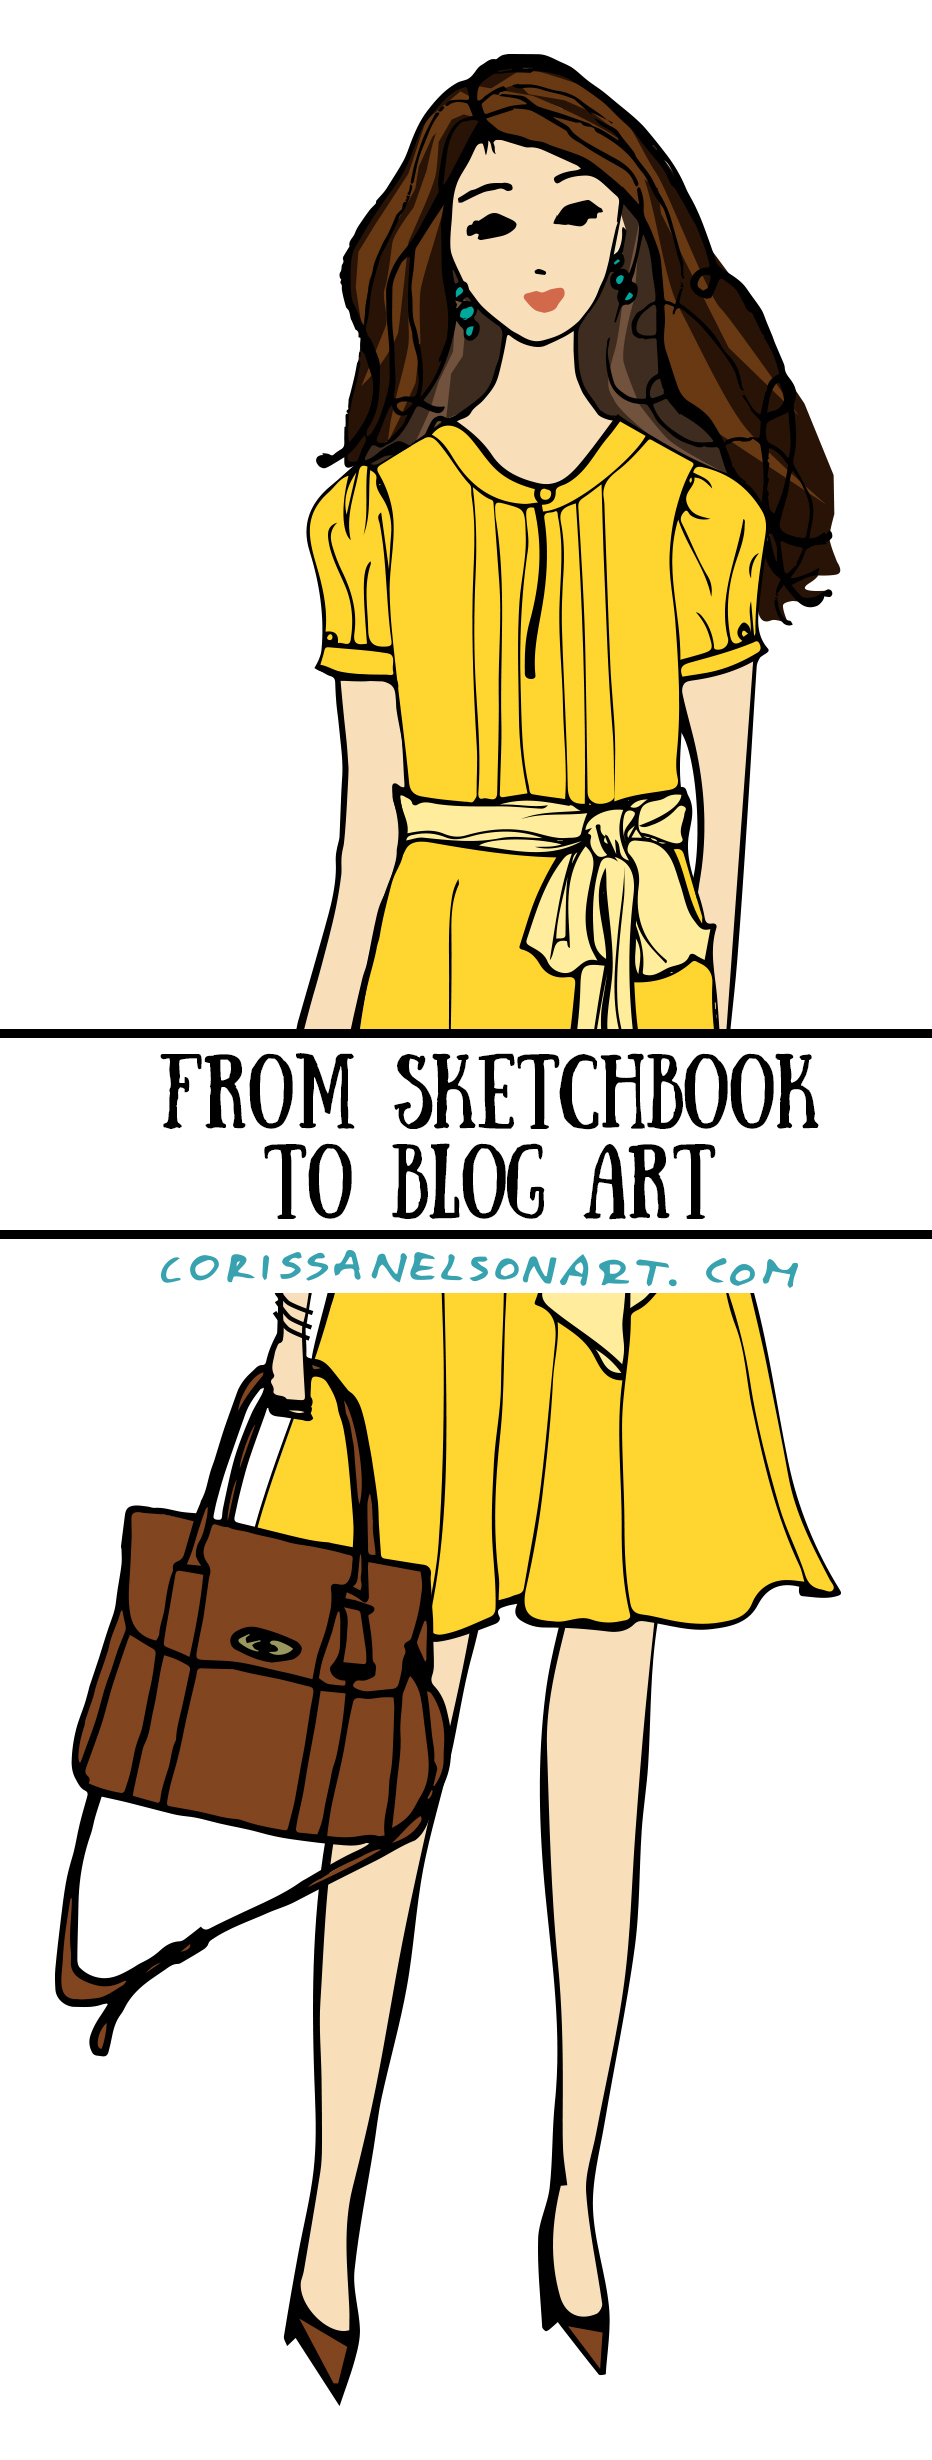 Artwork created for The Yellow Dress